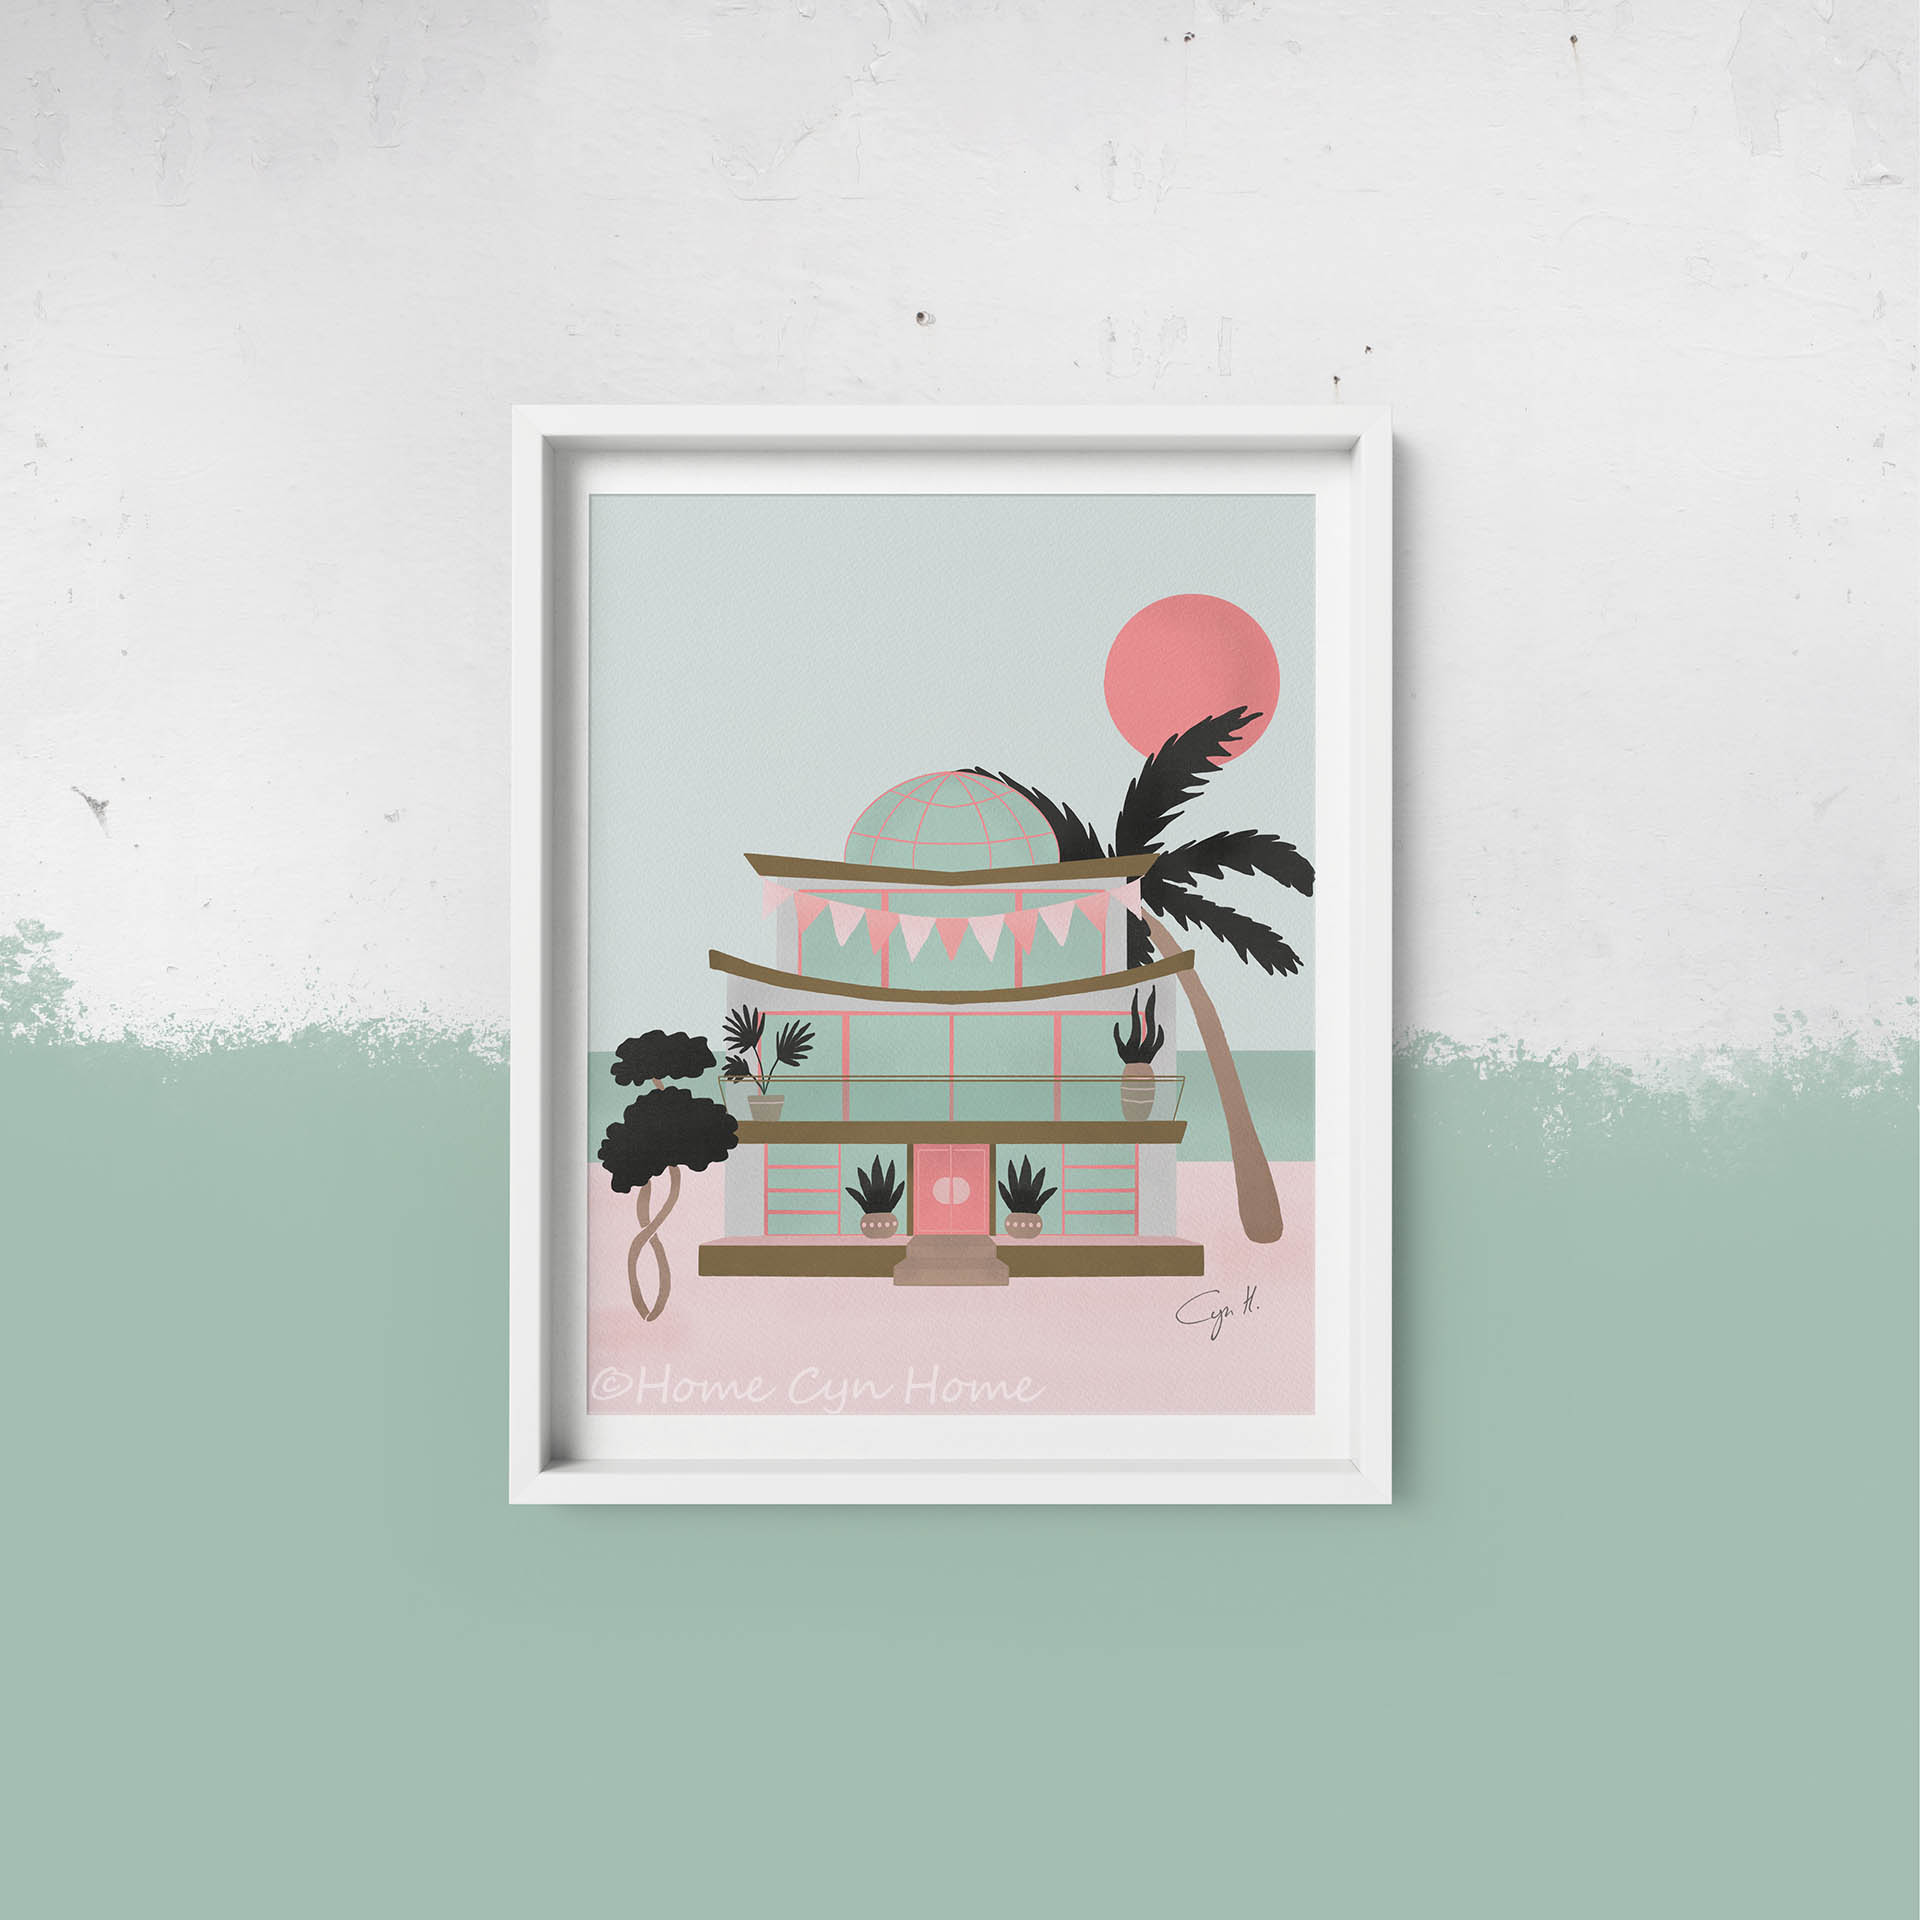 A cute pastel pink and mint beach house with big windows and a glass dome